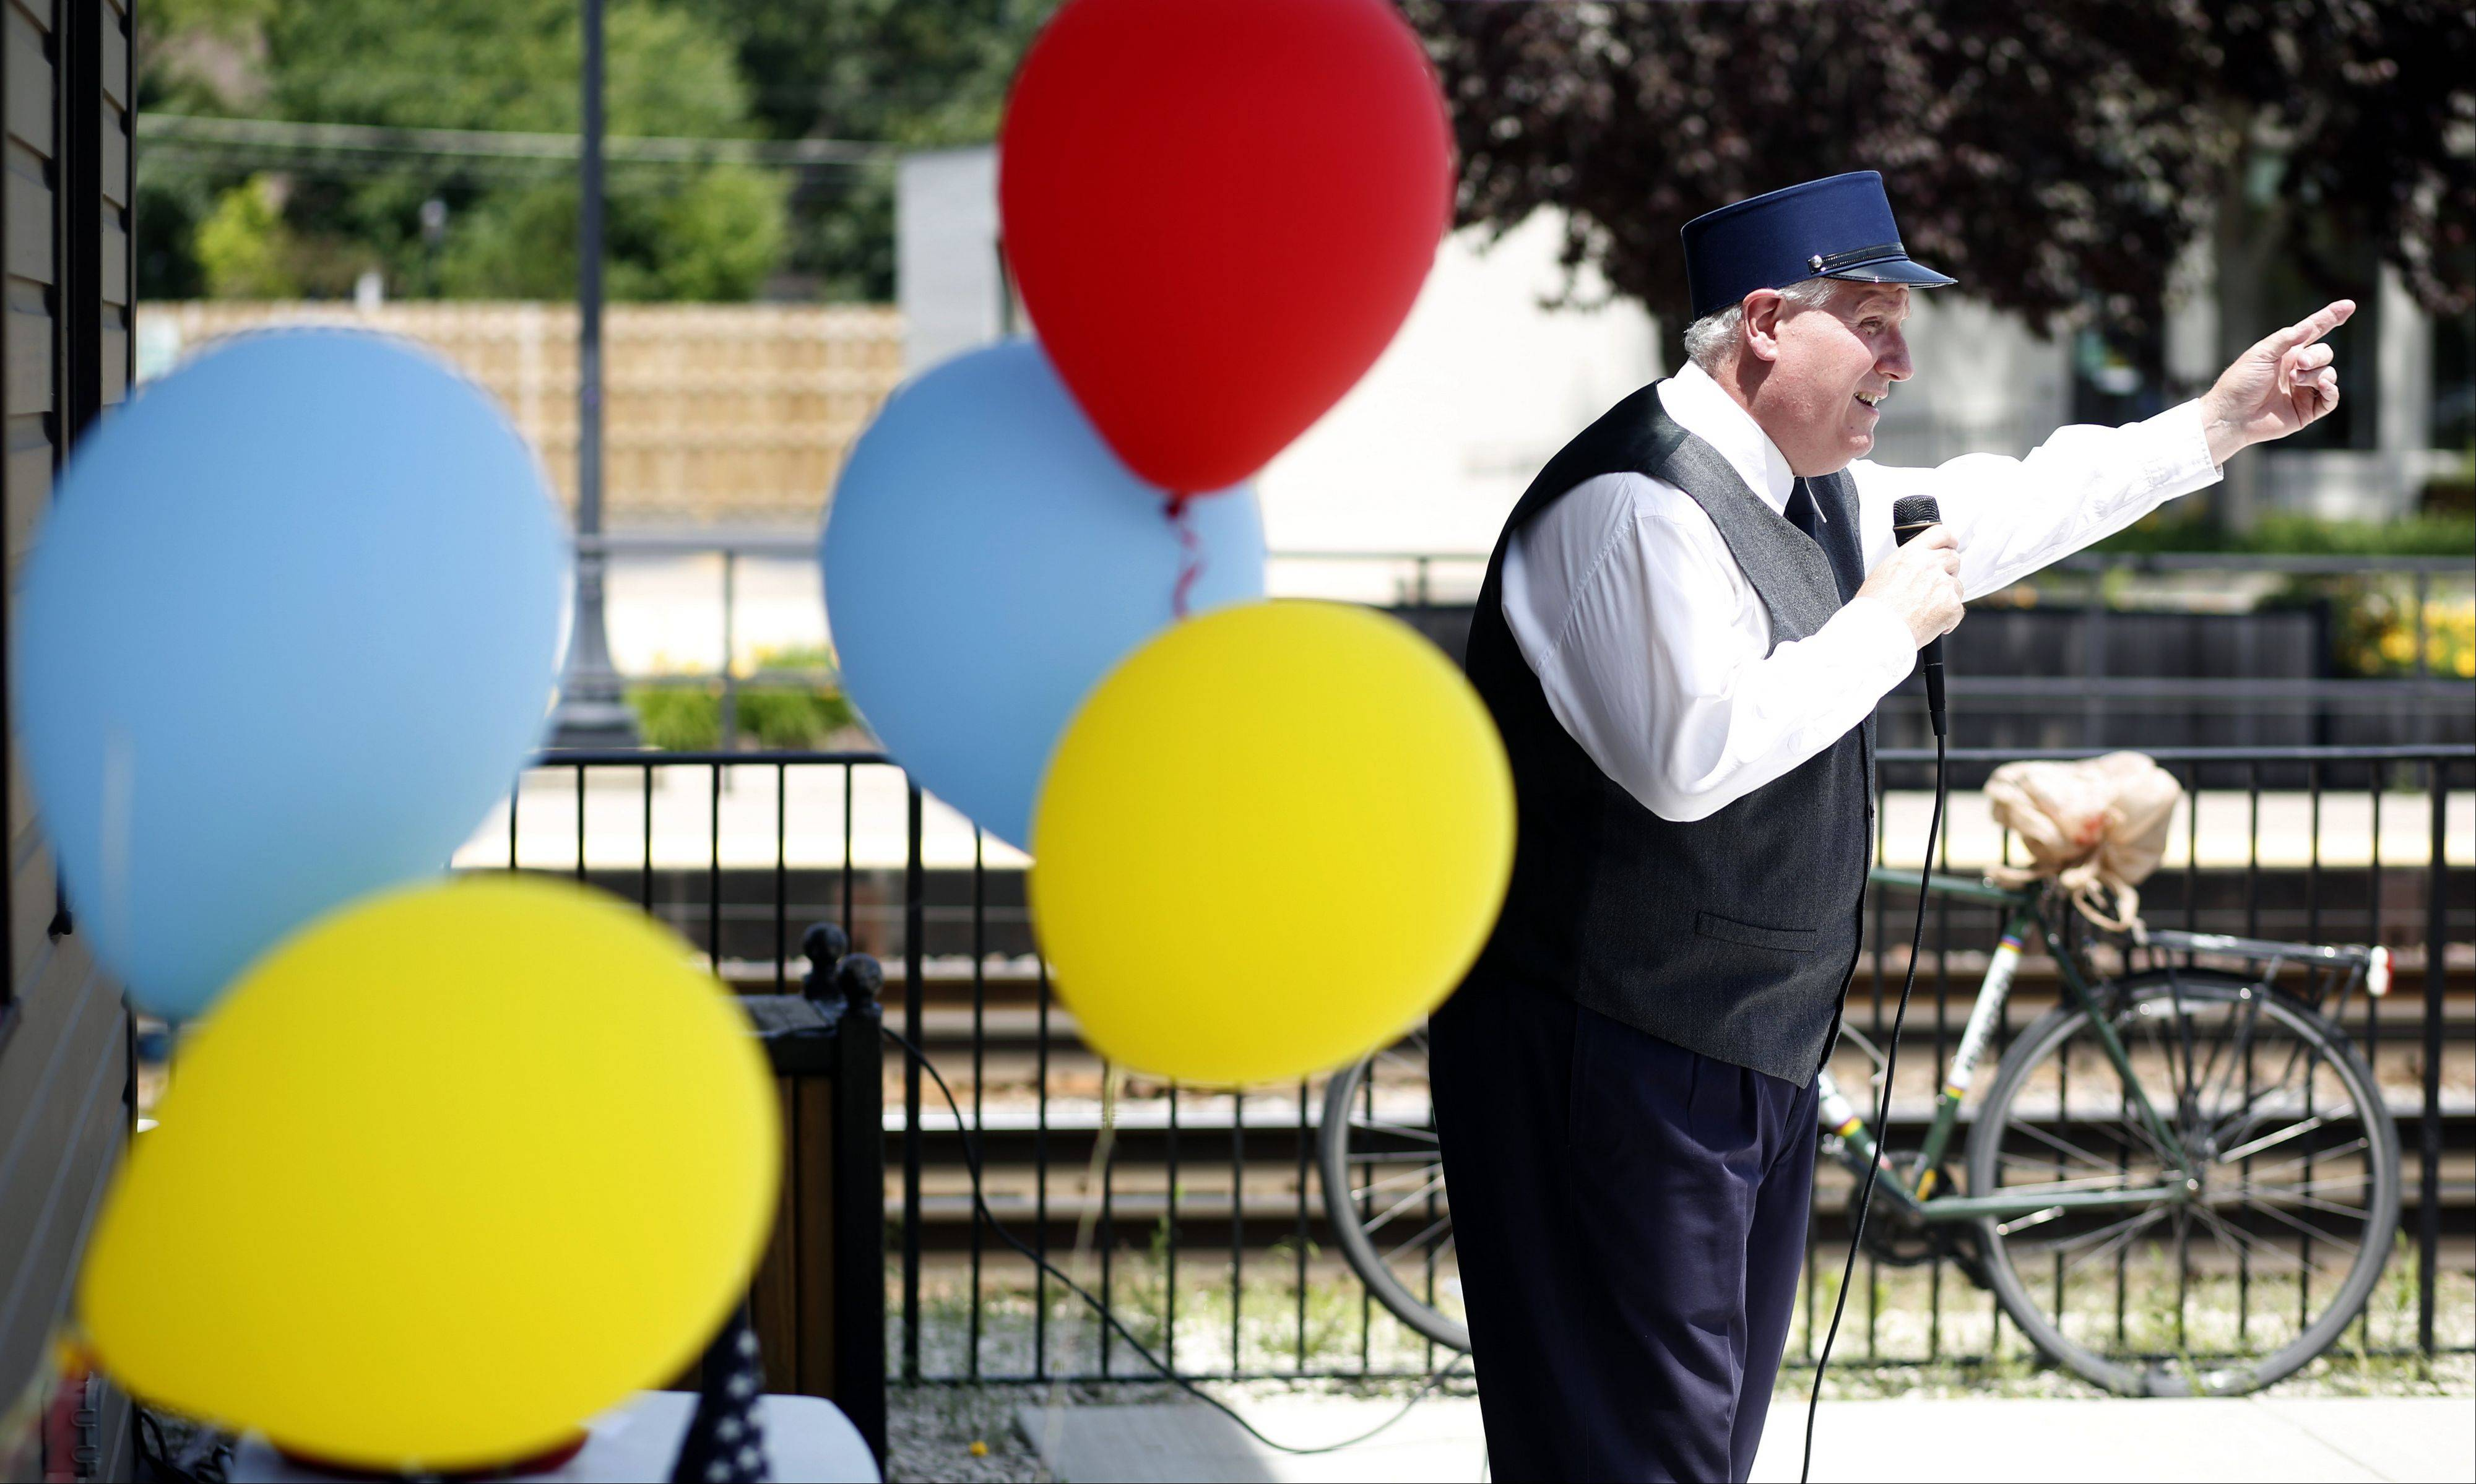 Terry Lynch of Orland Park portrays long time Bartlett Depot employee Joe Charneskey during the building's 140th Birthday Bash Thursday. In 1873, Luther and Sophia Bartlett donated land to the Chicago & Pacific Railroad for a rail line from Chicago to Elgin. The depot was built in June of that year.